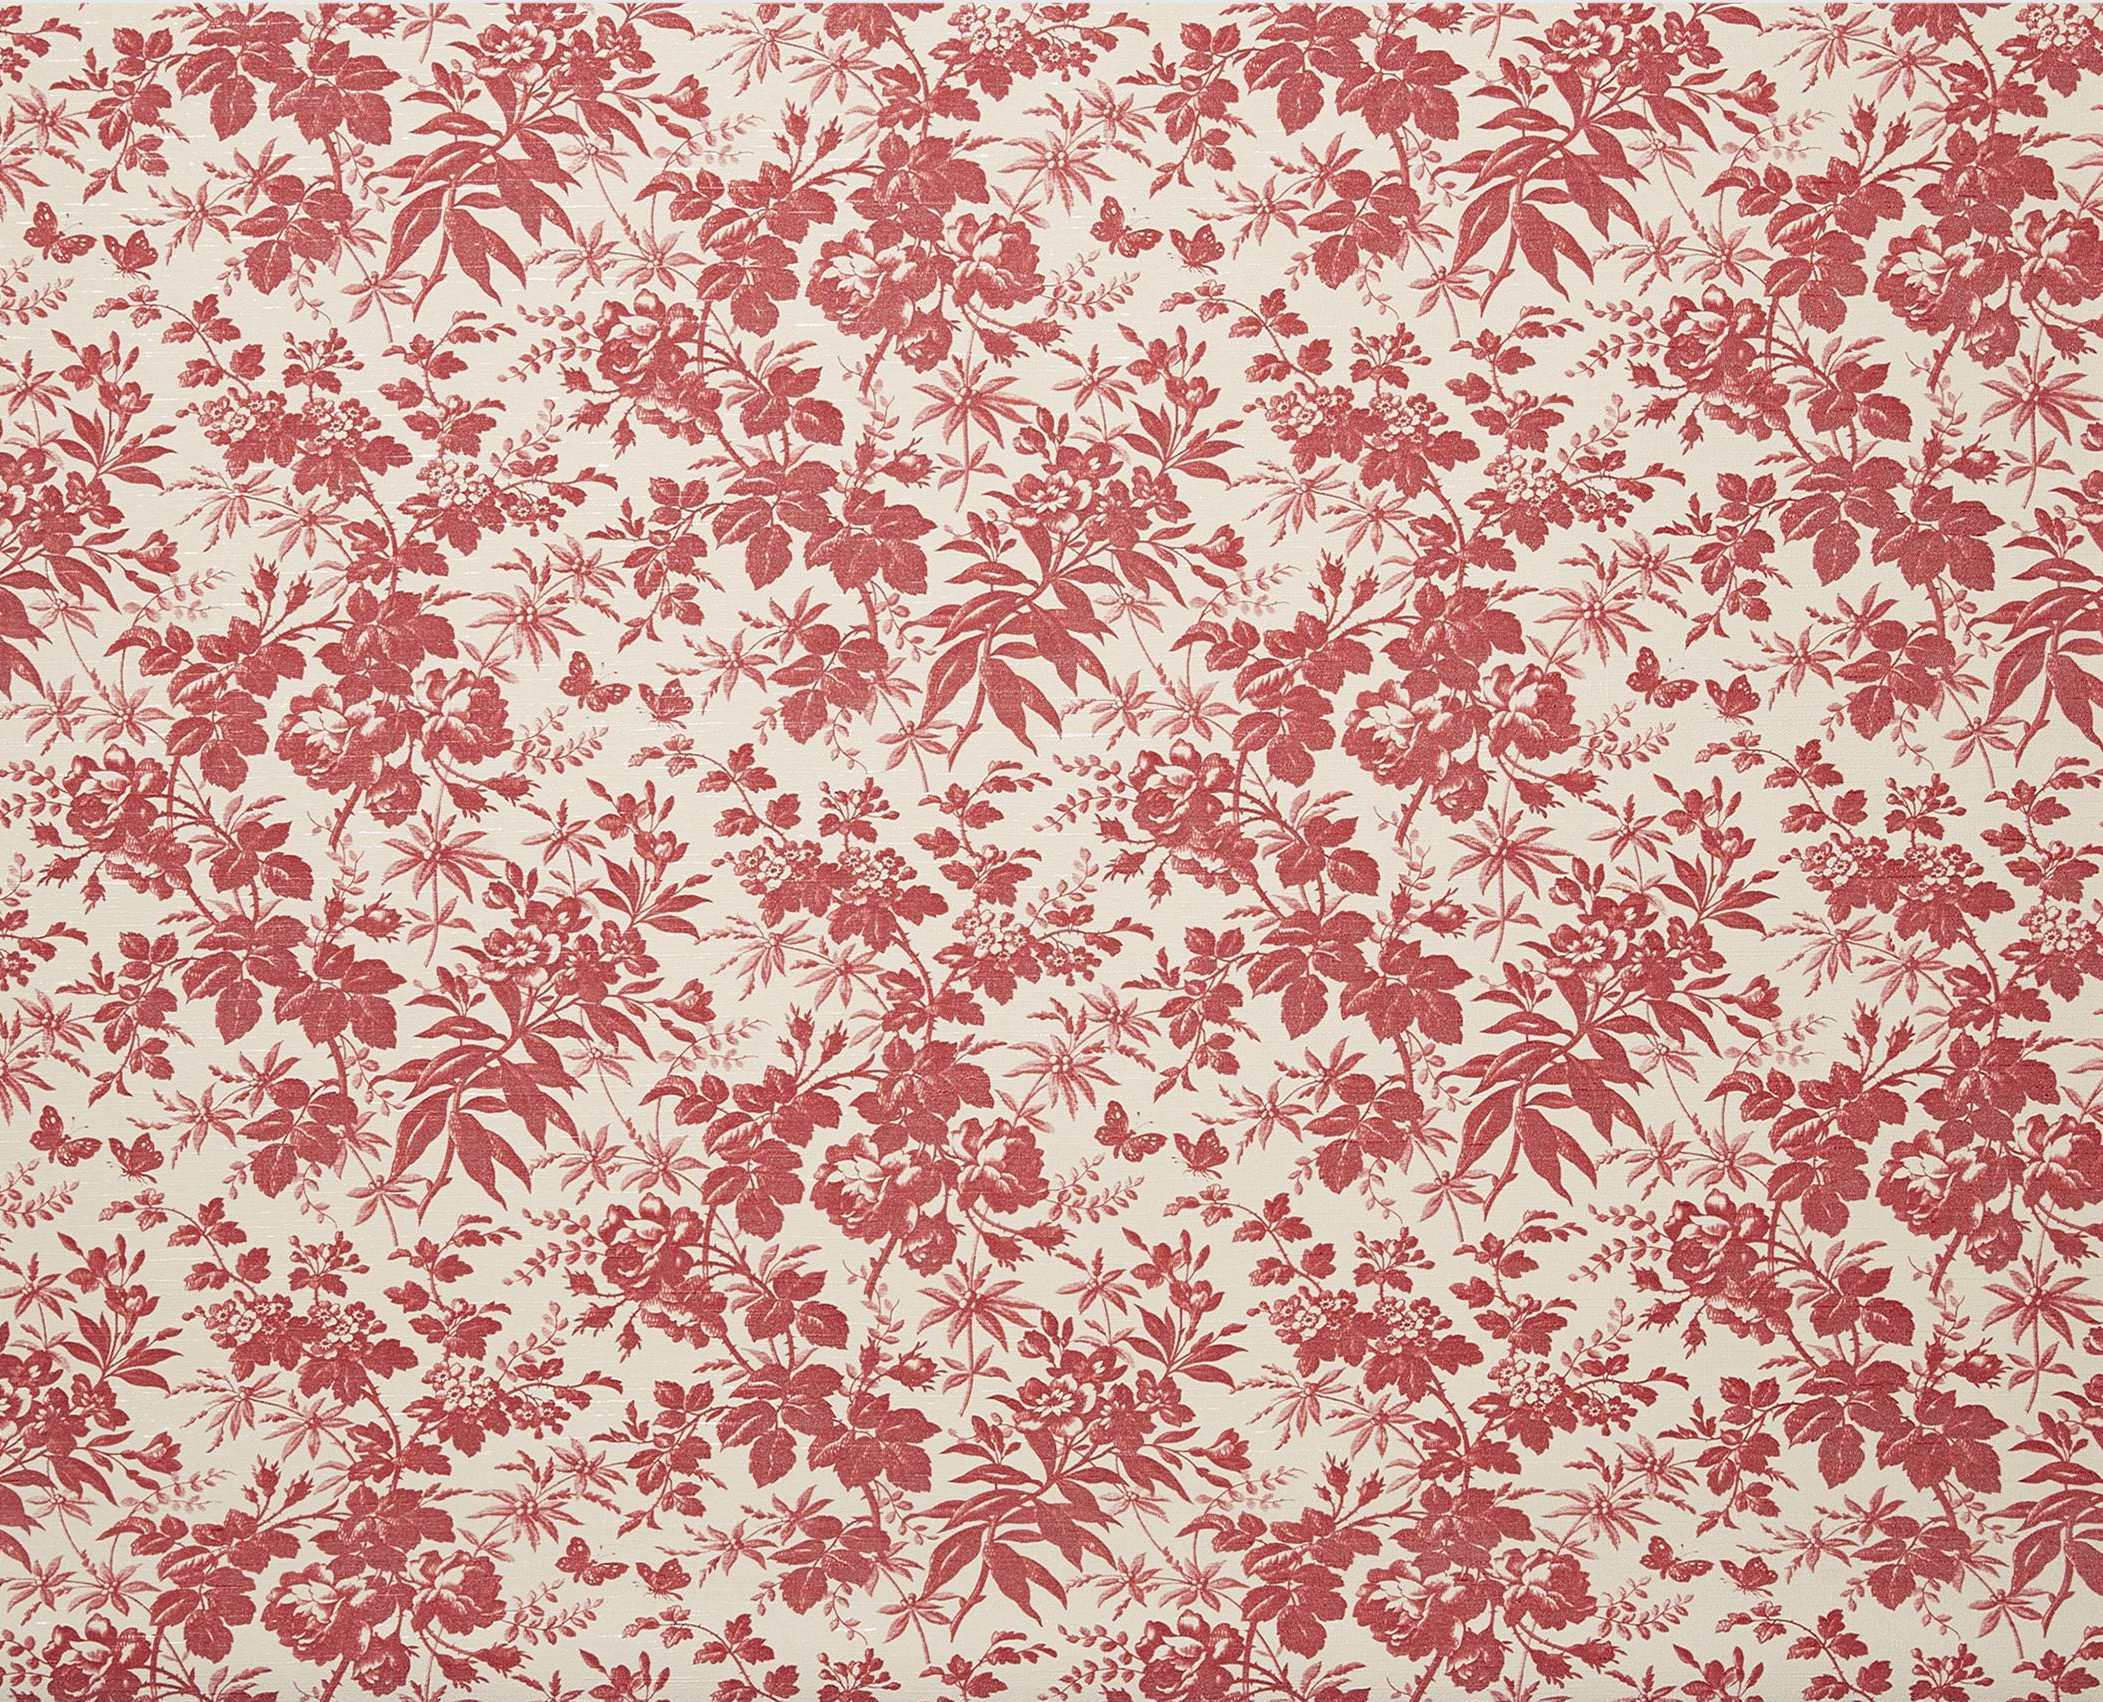 Gucci Light-Herbarium-print-wallpaper